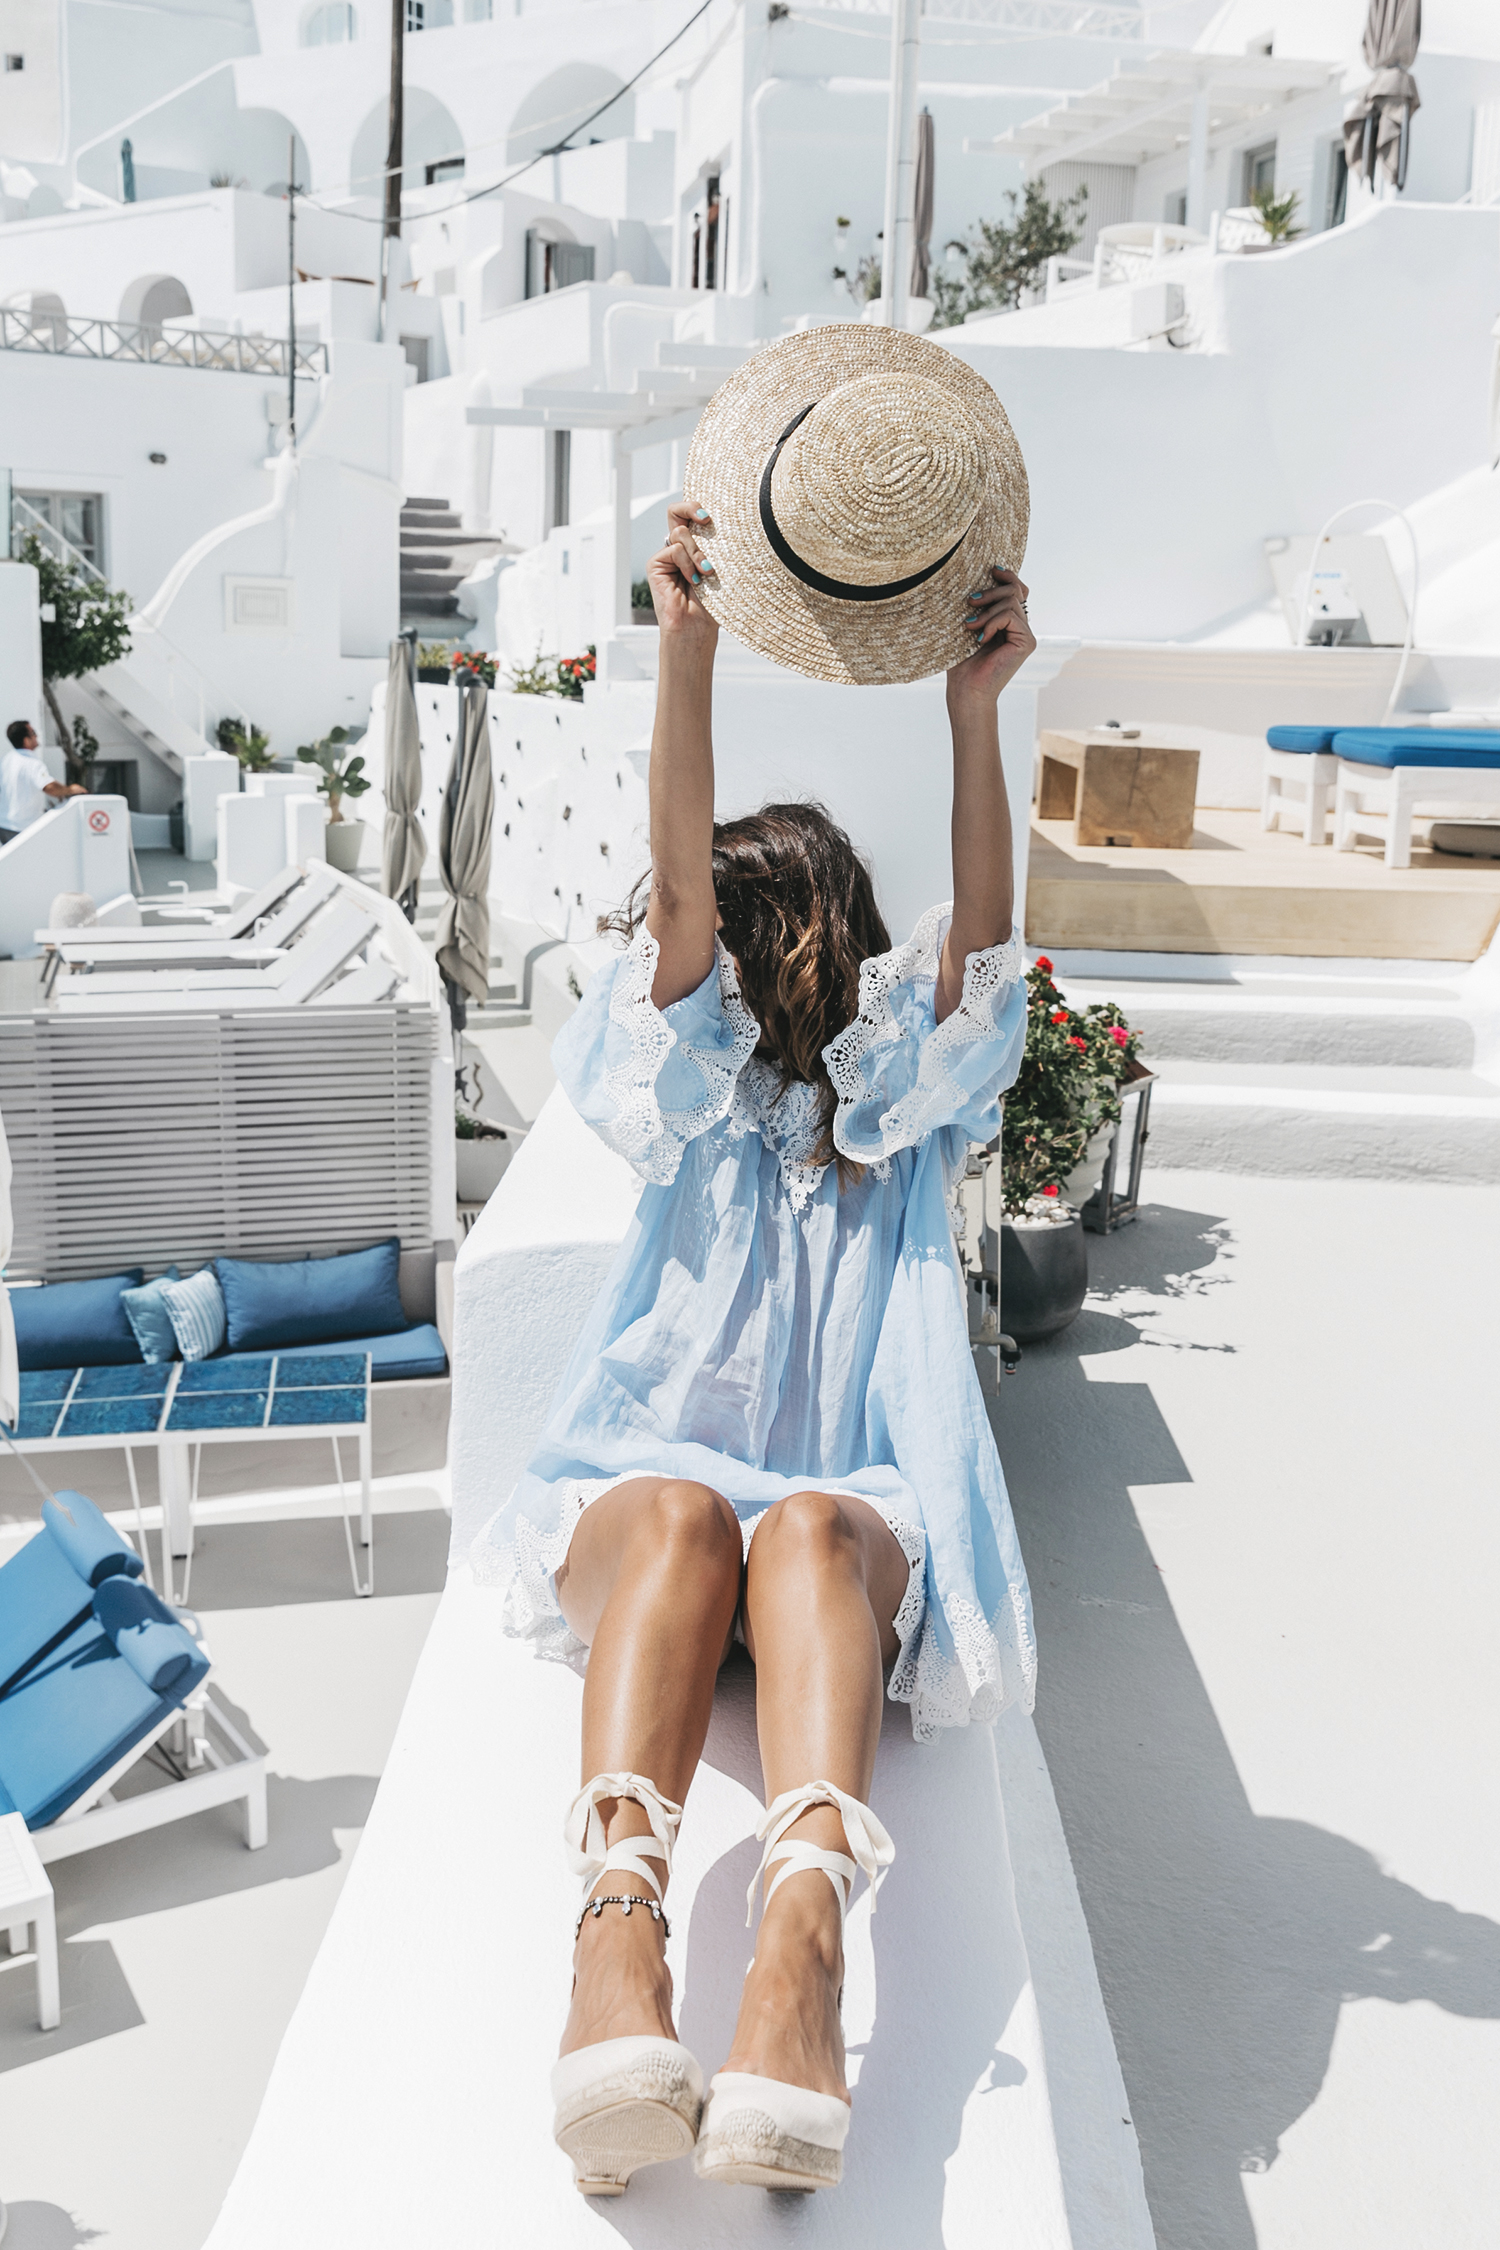 Blue_Dress-Soludos_Escapes-Soludos_Espadrilles-Canotier-Hat-Lack_Of_Color-Summer-Santorini-Collage_Vintage-61